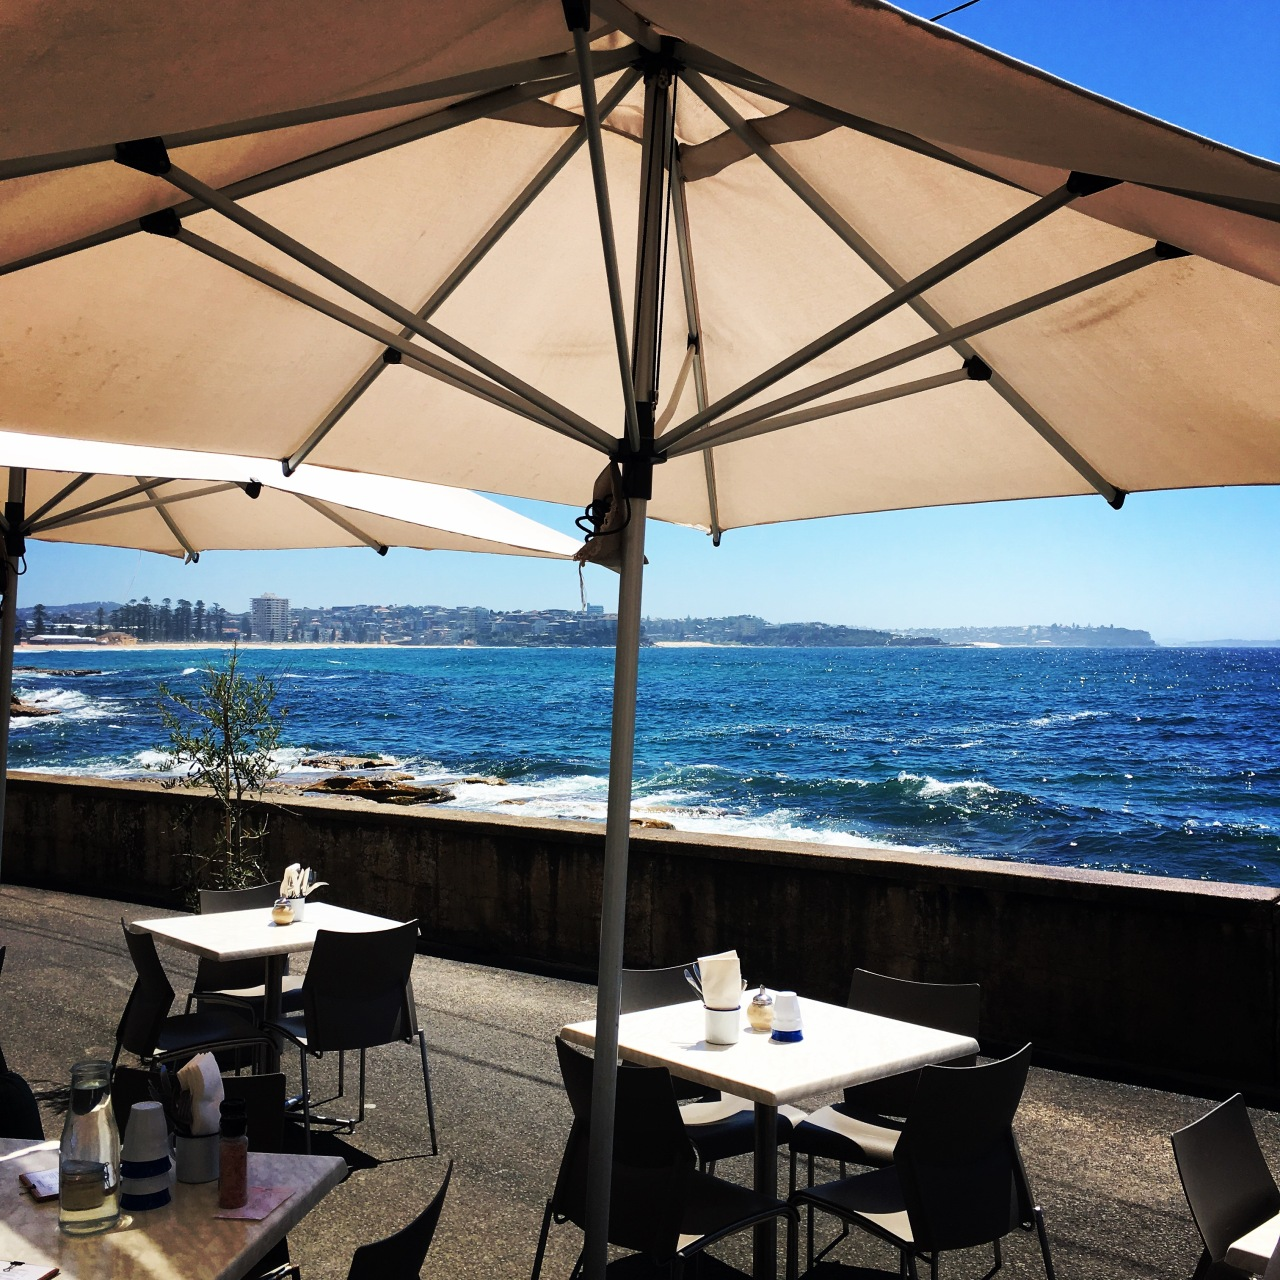 The Bower Restaurant in Manly, Australia